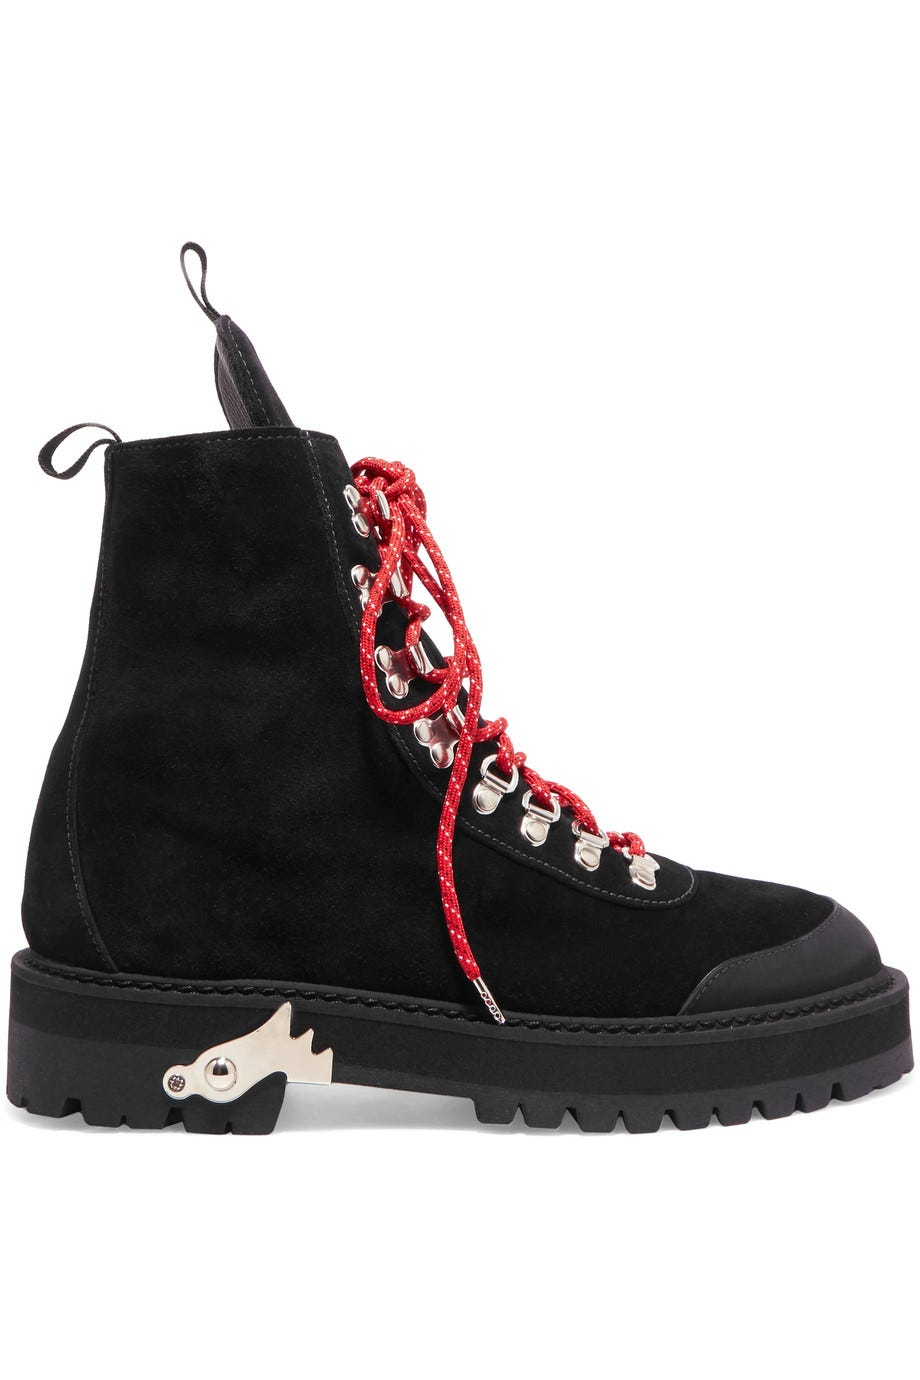 Best Snow Boots Womens Winter Shoes Footwear